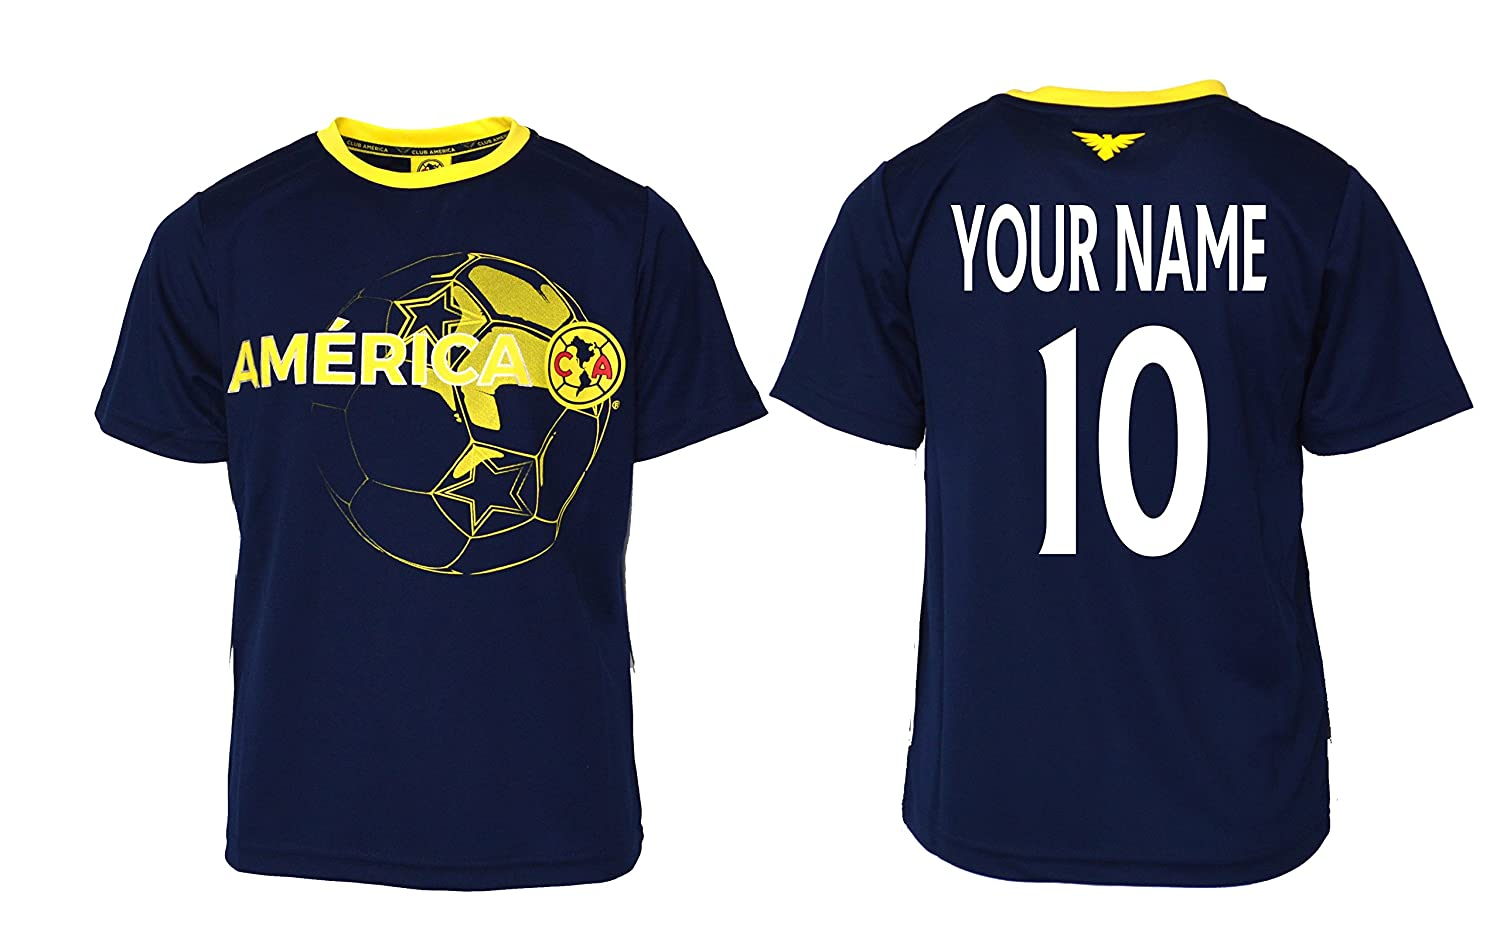 0c67de6e5 Amazon.com   Club America Soccer Jersey Youth Boys Training Custom Name and  Number   Sports   Outdoors